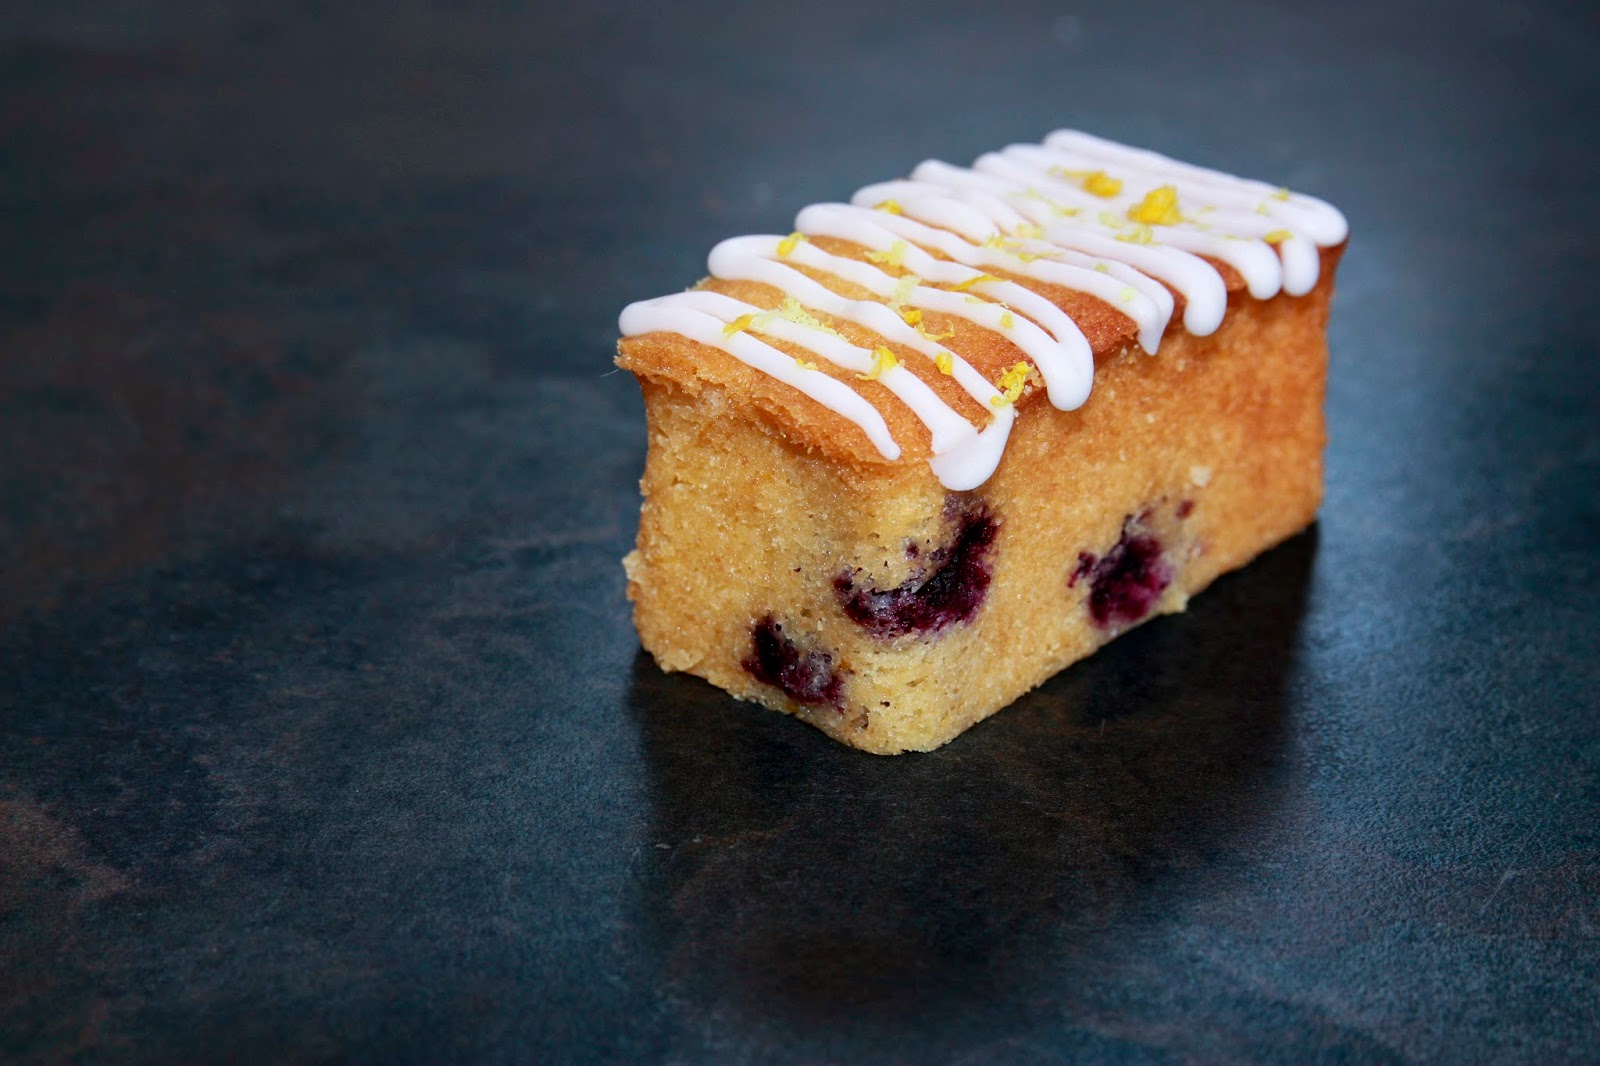 Mini lemon and blueberry loaf cake